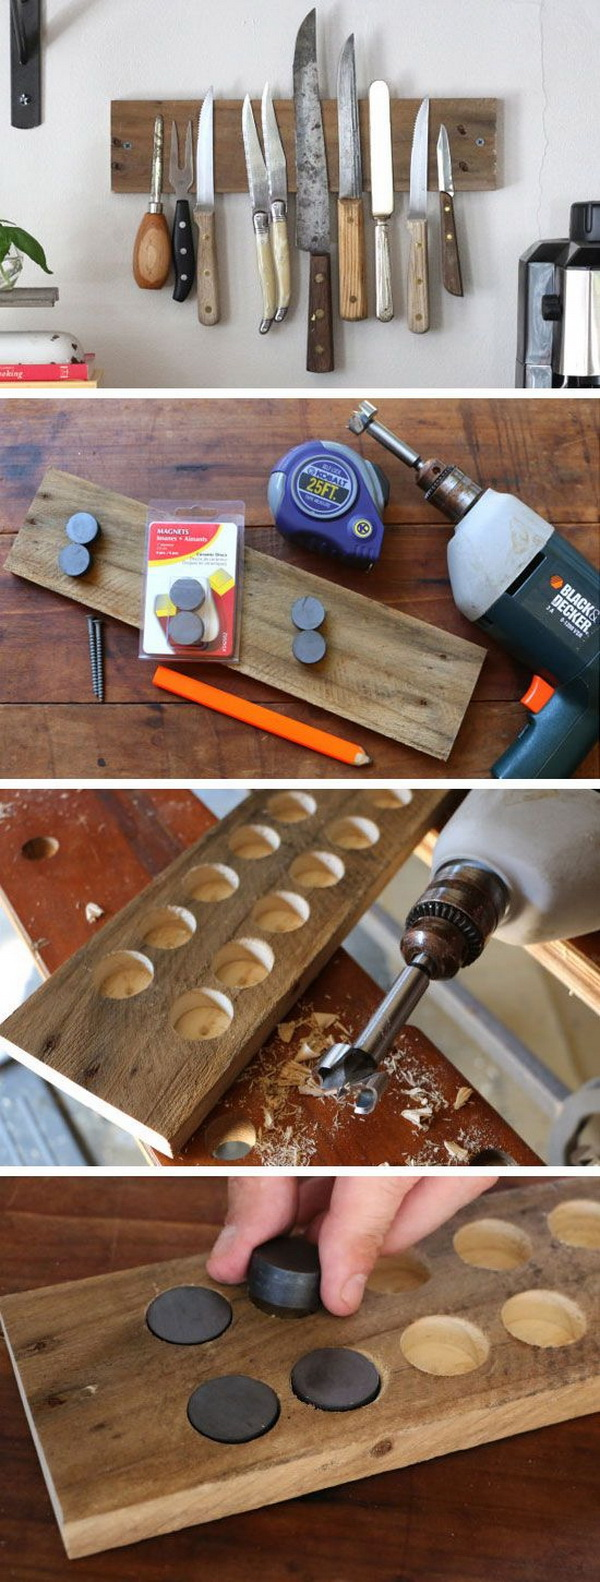 DIY Rustic Wall Rack: This exposed magnetic knife rack is super useful for maximizing storage space and providing easy access to kitchen tools.